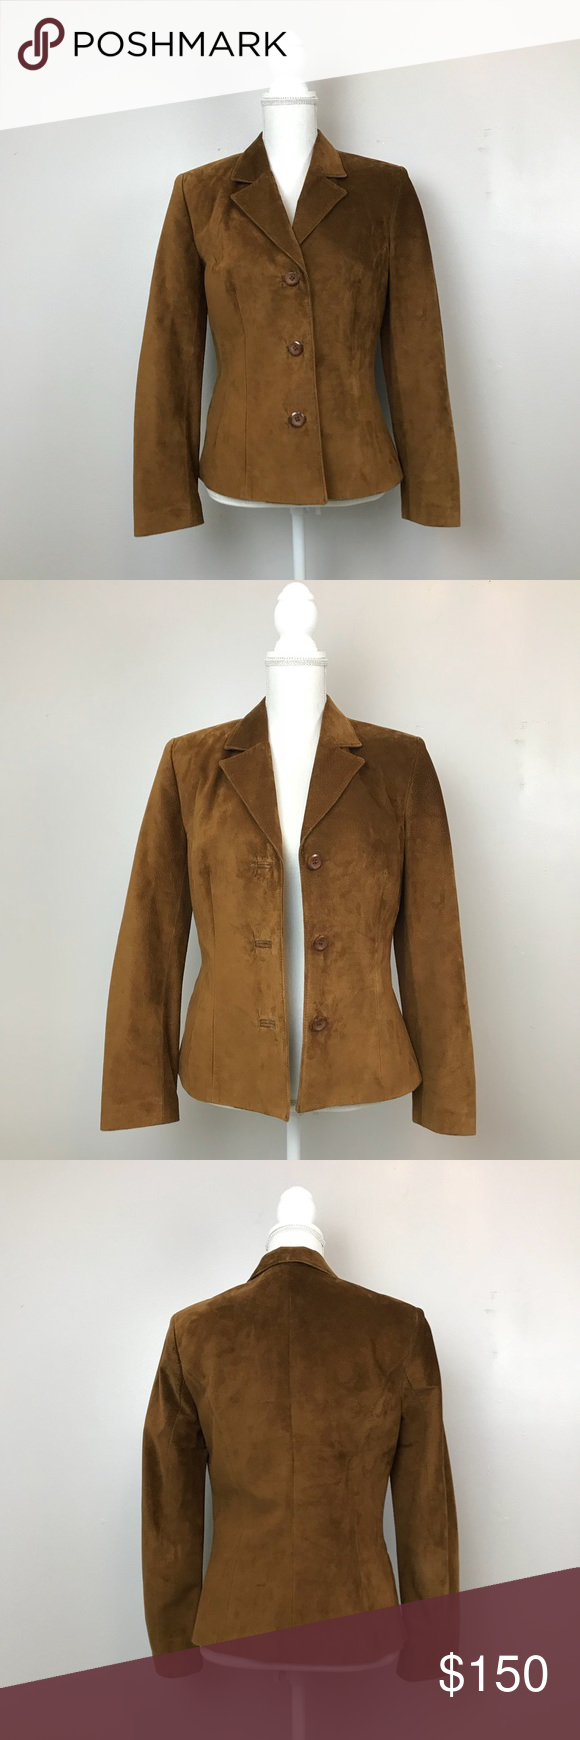 Danier Canada Genuine Suede Leather Jacket Genuine suede